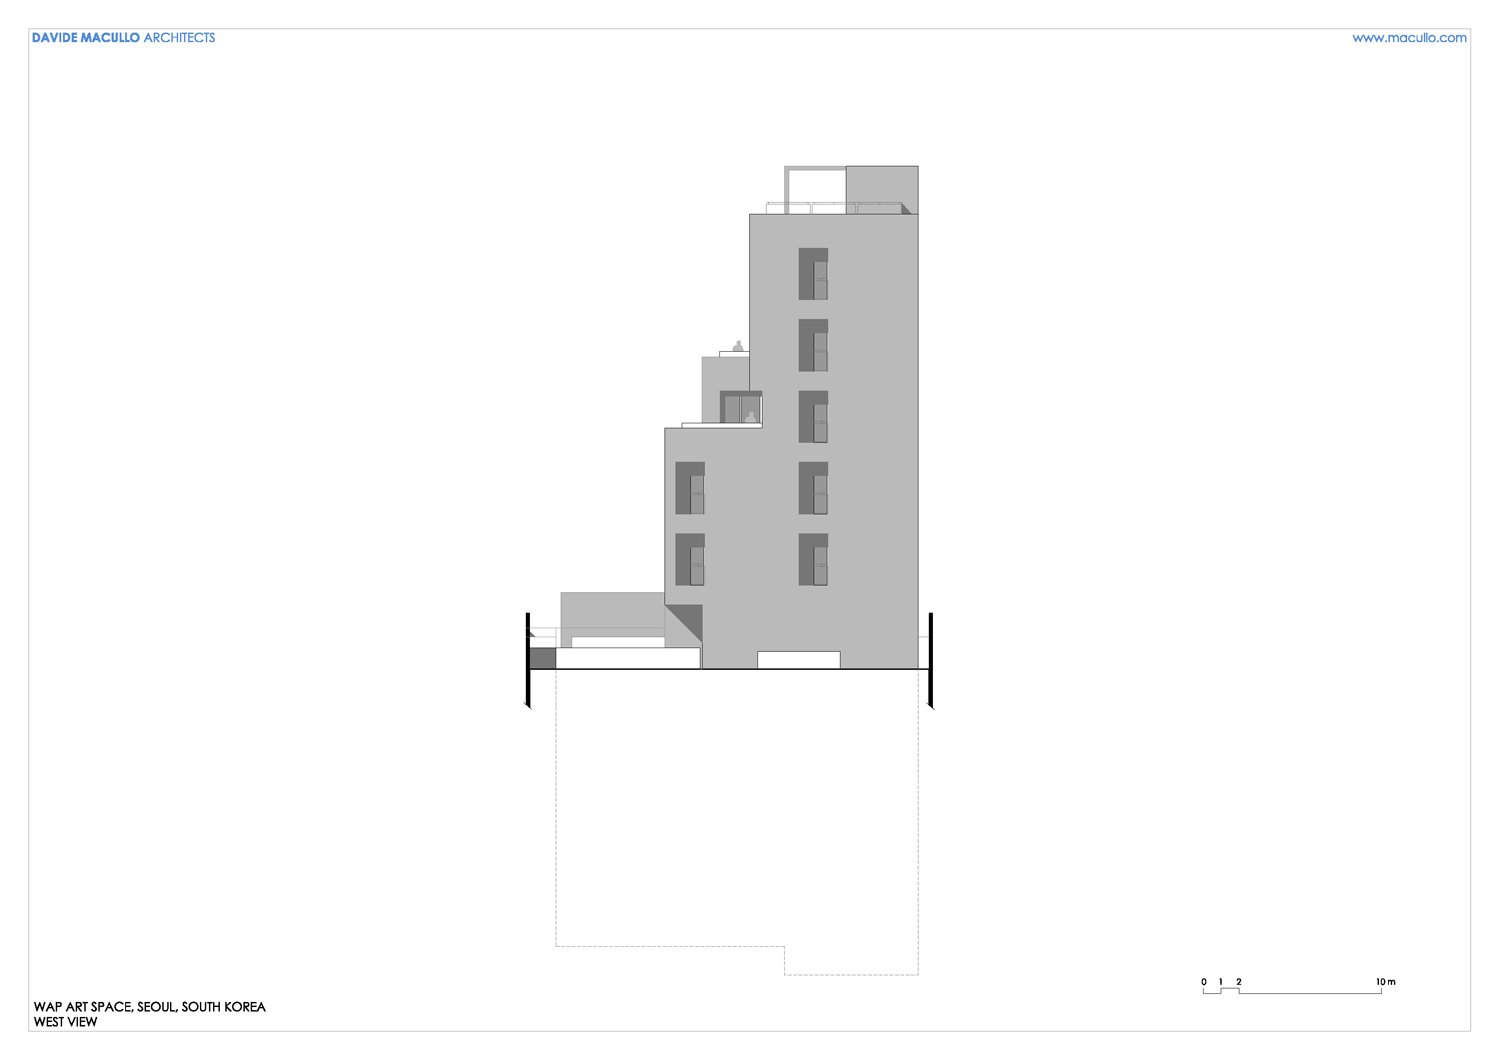 West elevation Davide Macullo Architects SA}